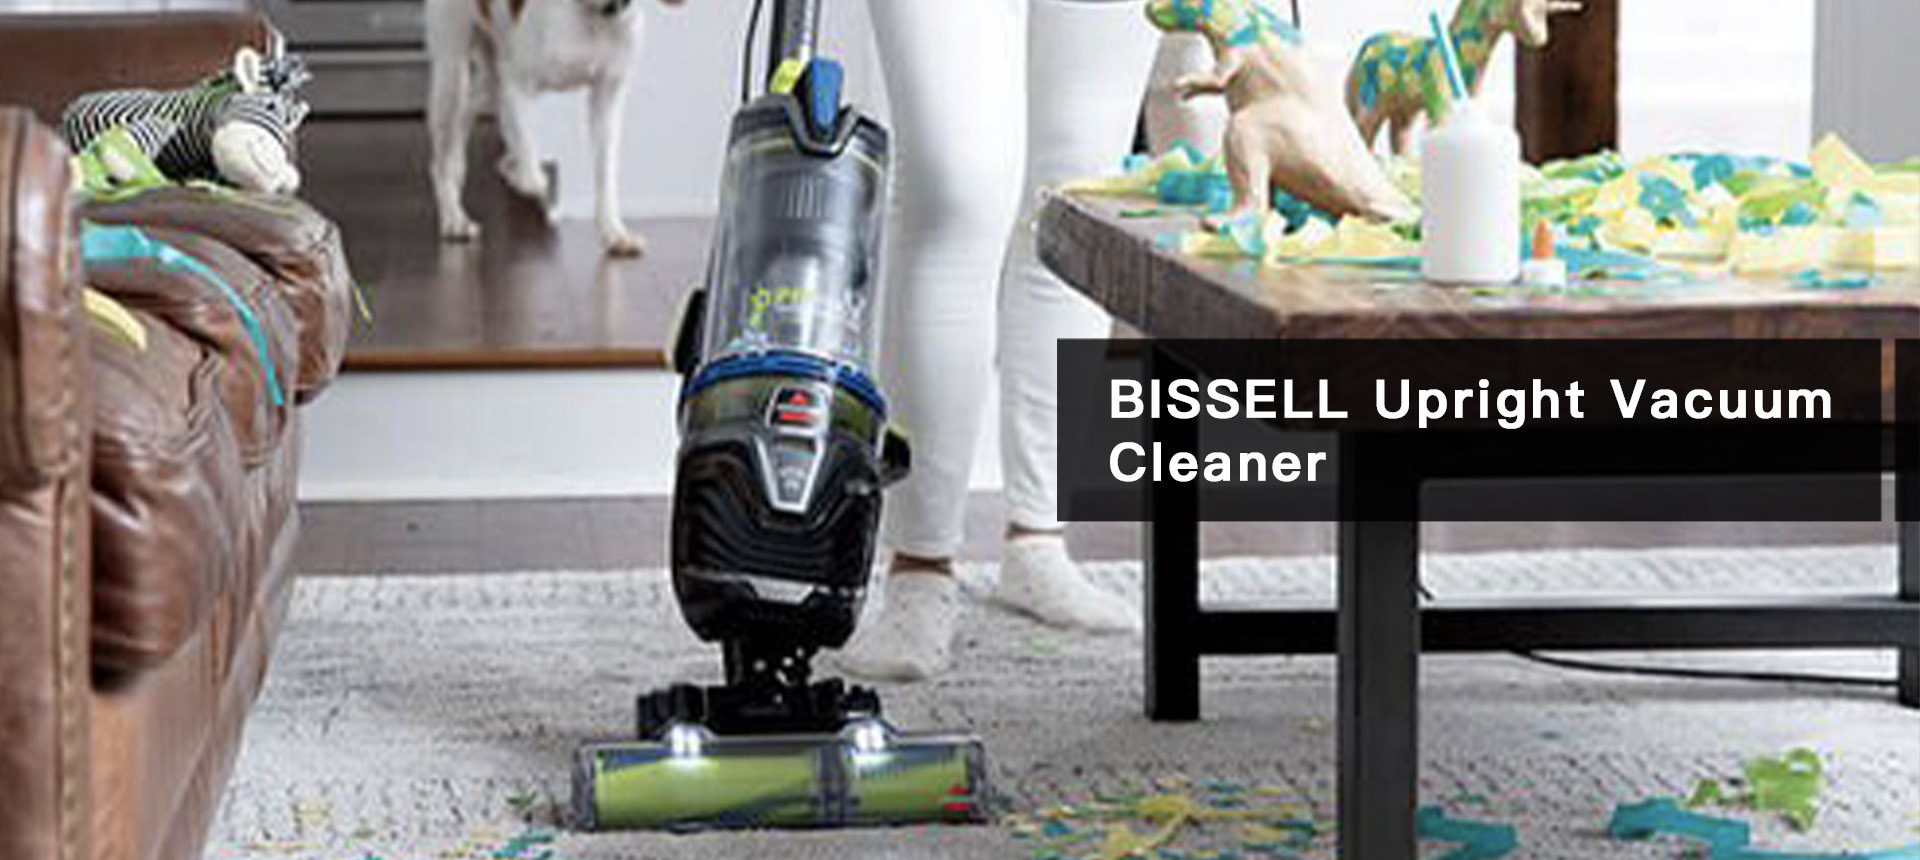 BISSELL Upright Vacuum Cleaner